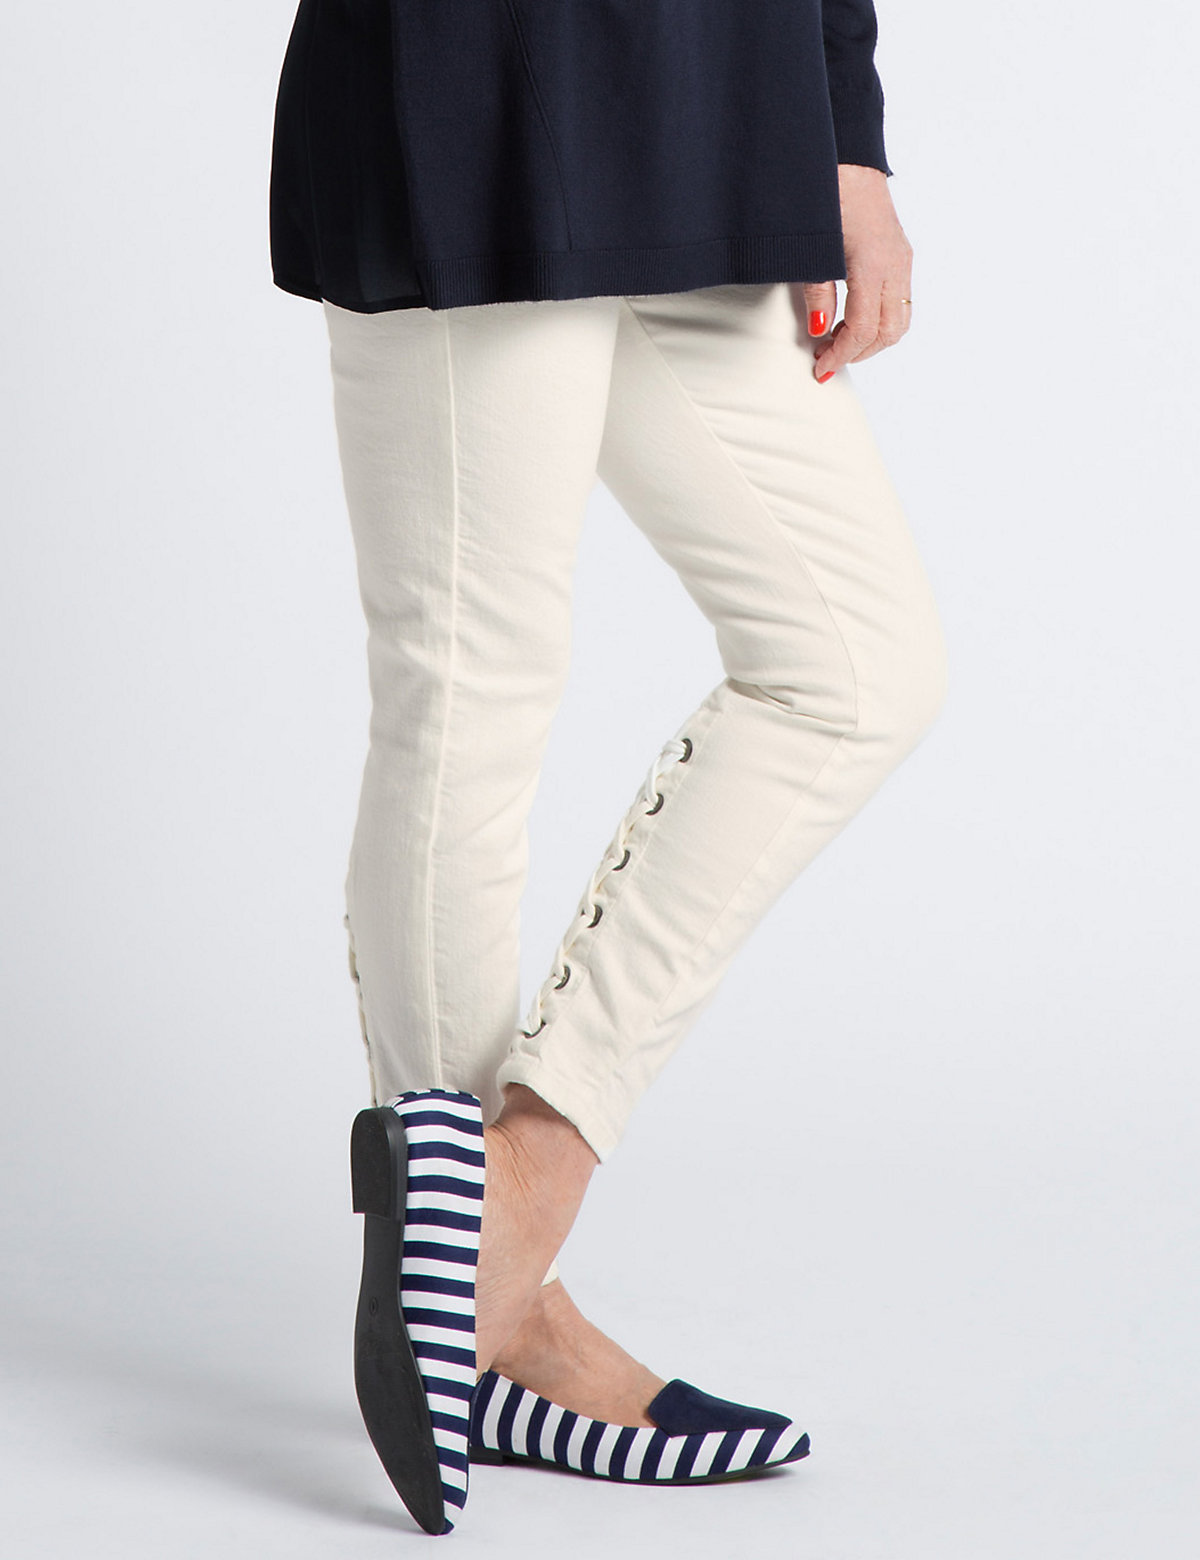 Twiggy Lace Up Super Skinny Jeans